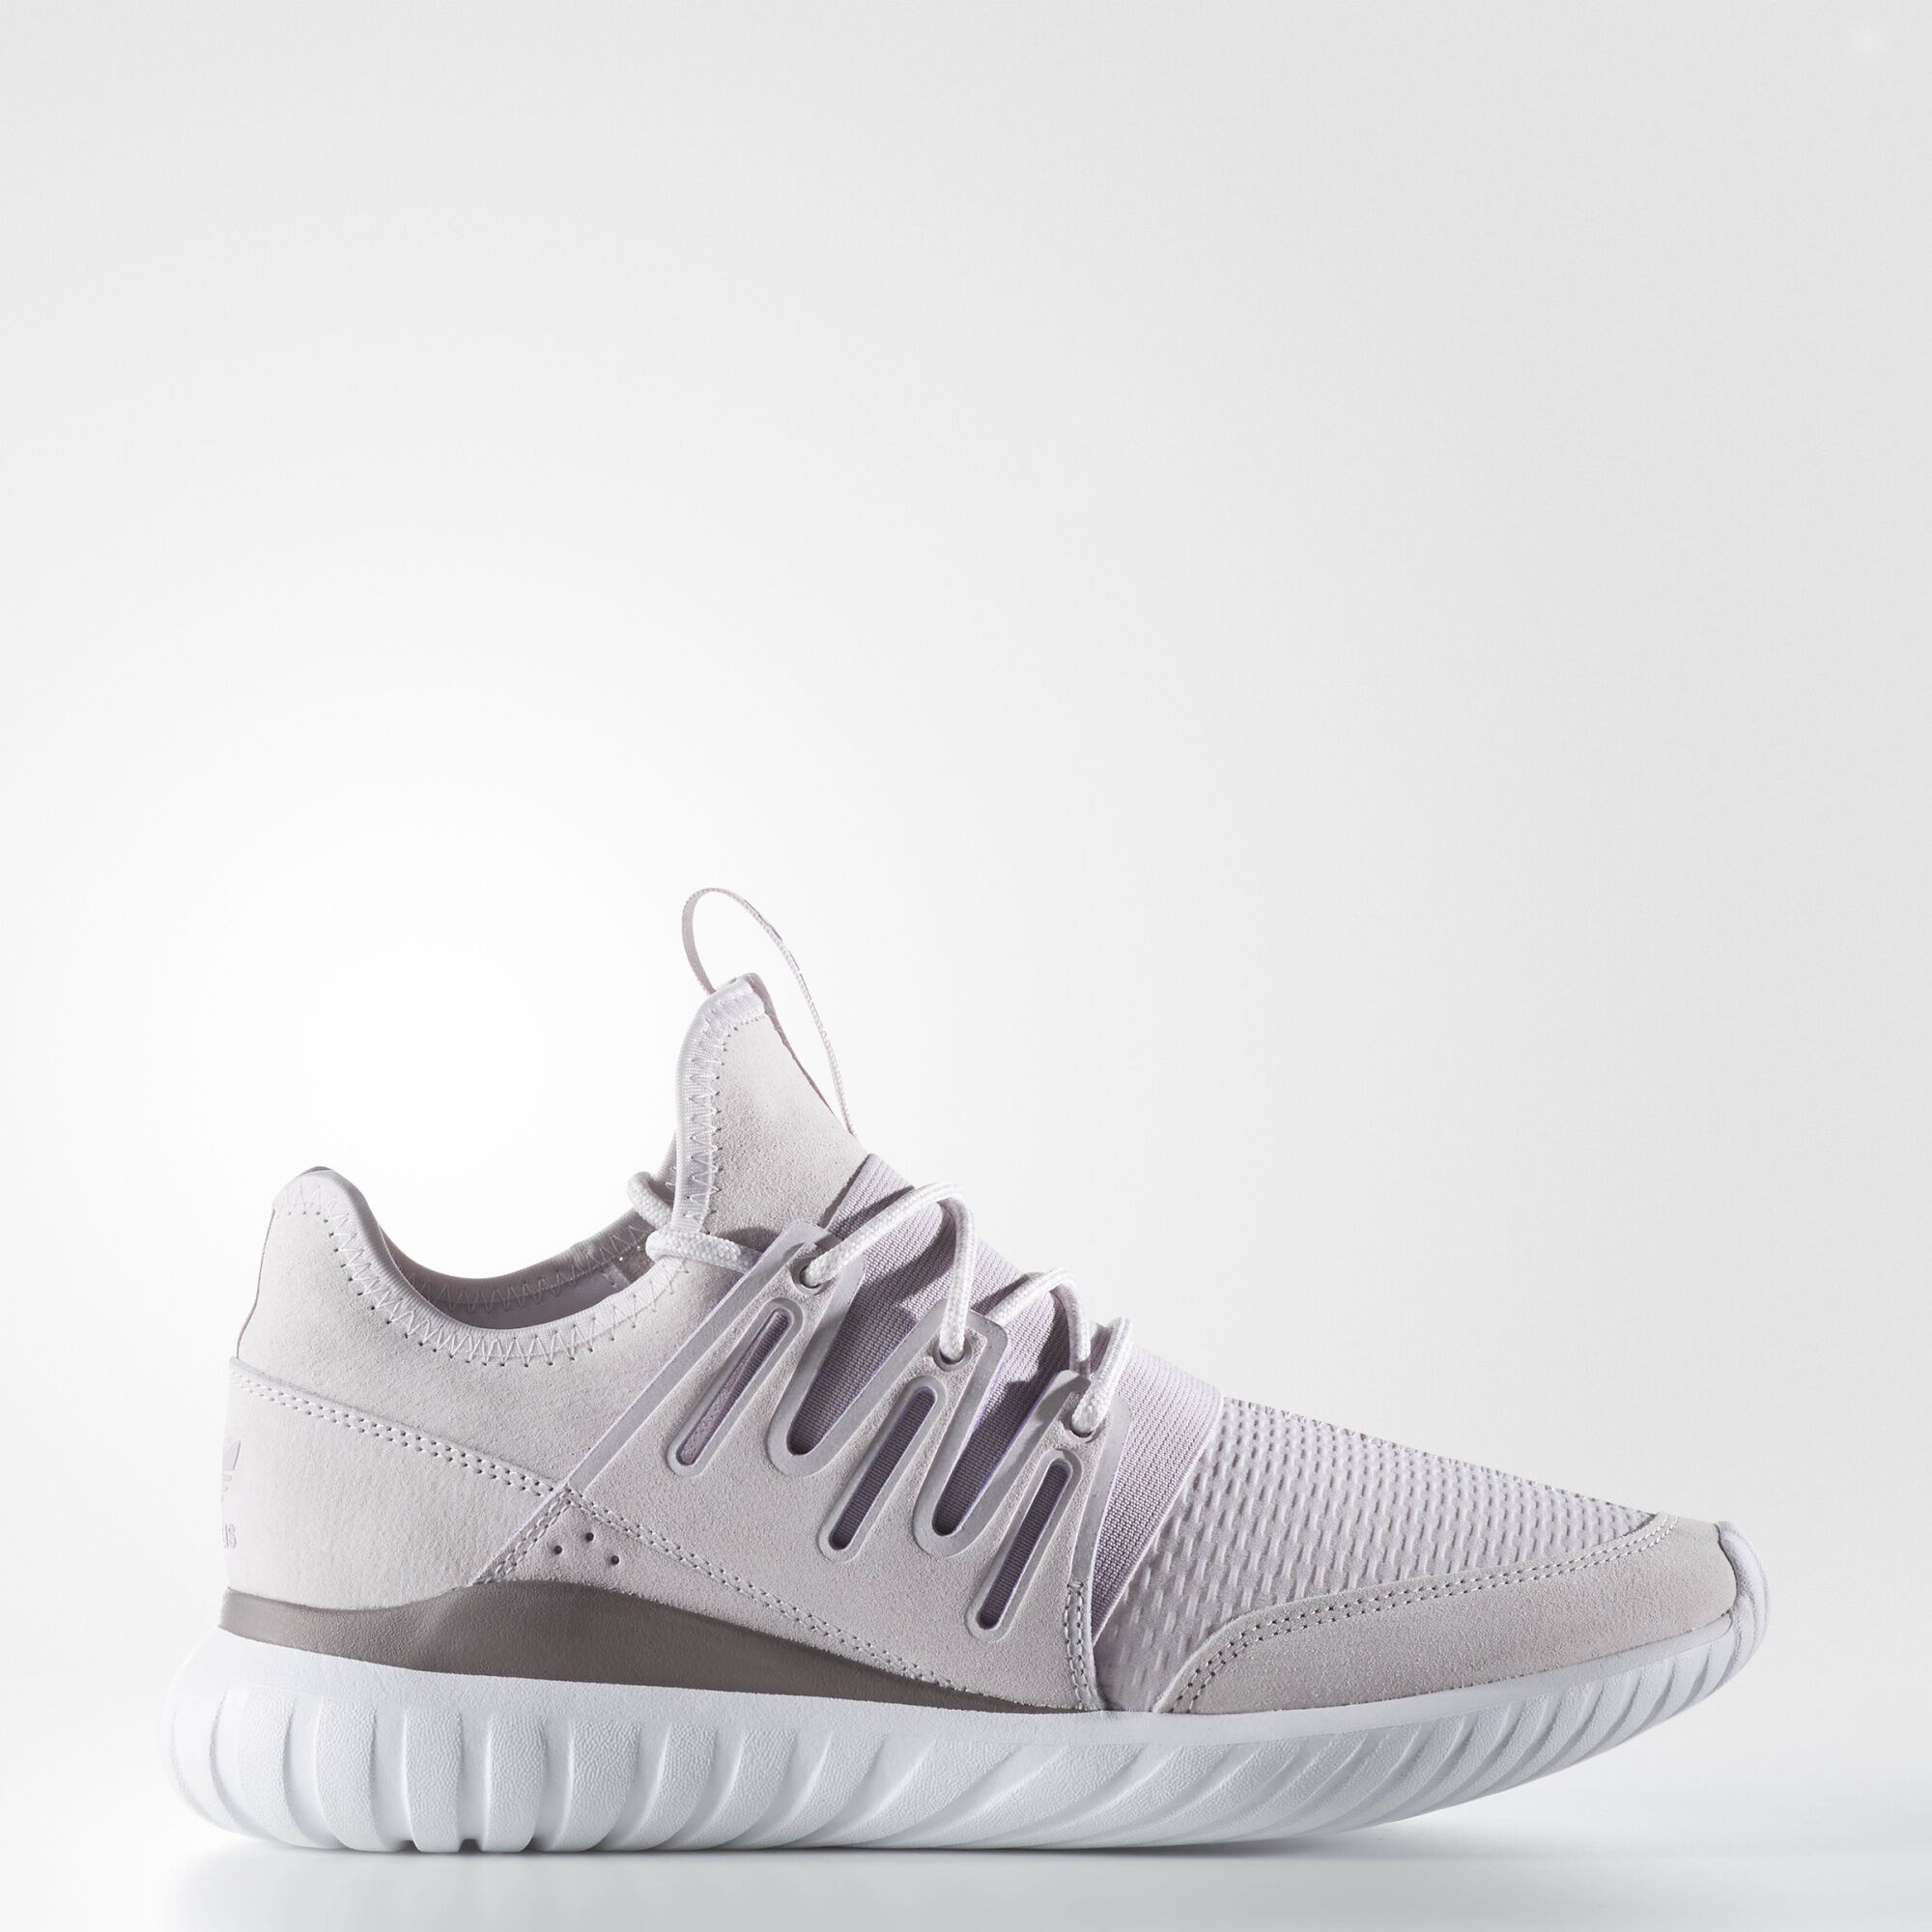 ADIDAS KIDS ORIGINALS TUBULAR SHADOW